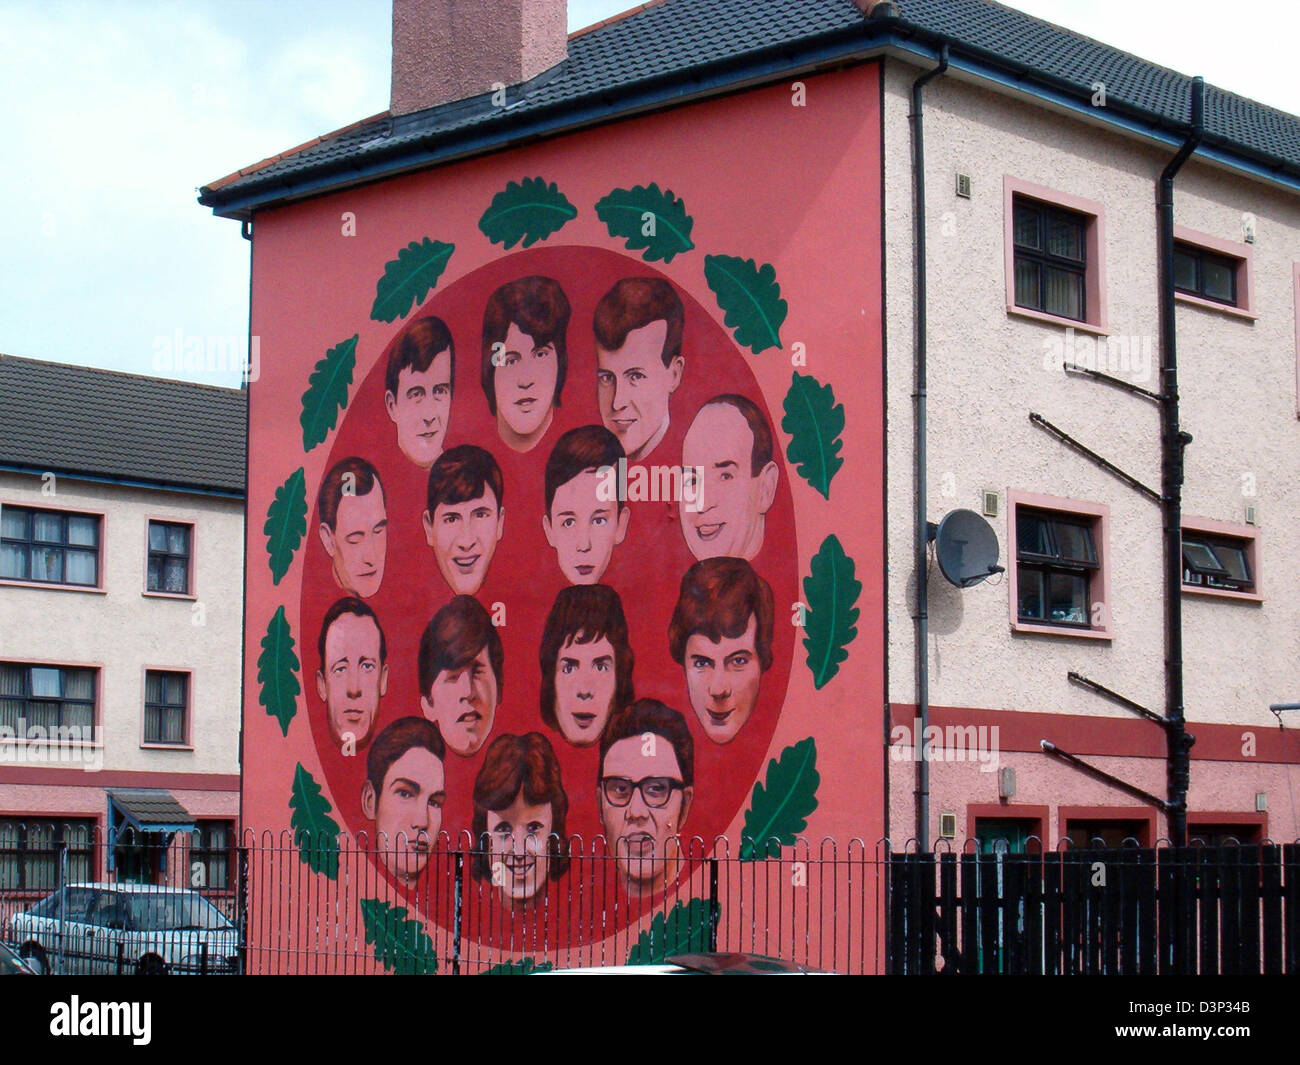 (dpa file) - A mural painting reminds of the vicitms of 'Bloody Sunday' in Londonderry, Northern Ireland, - Stock Image